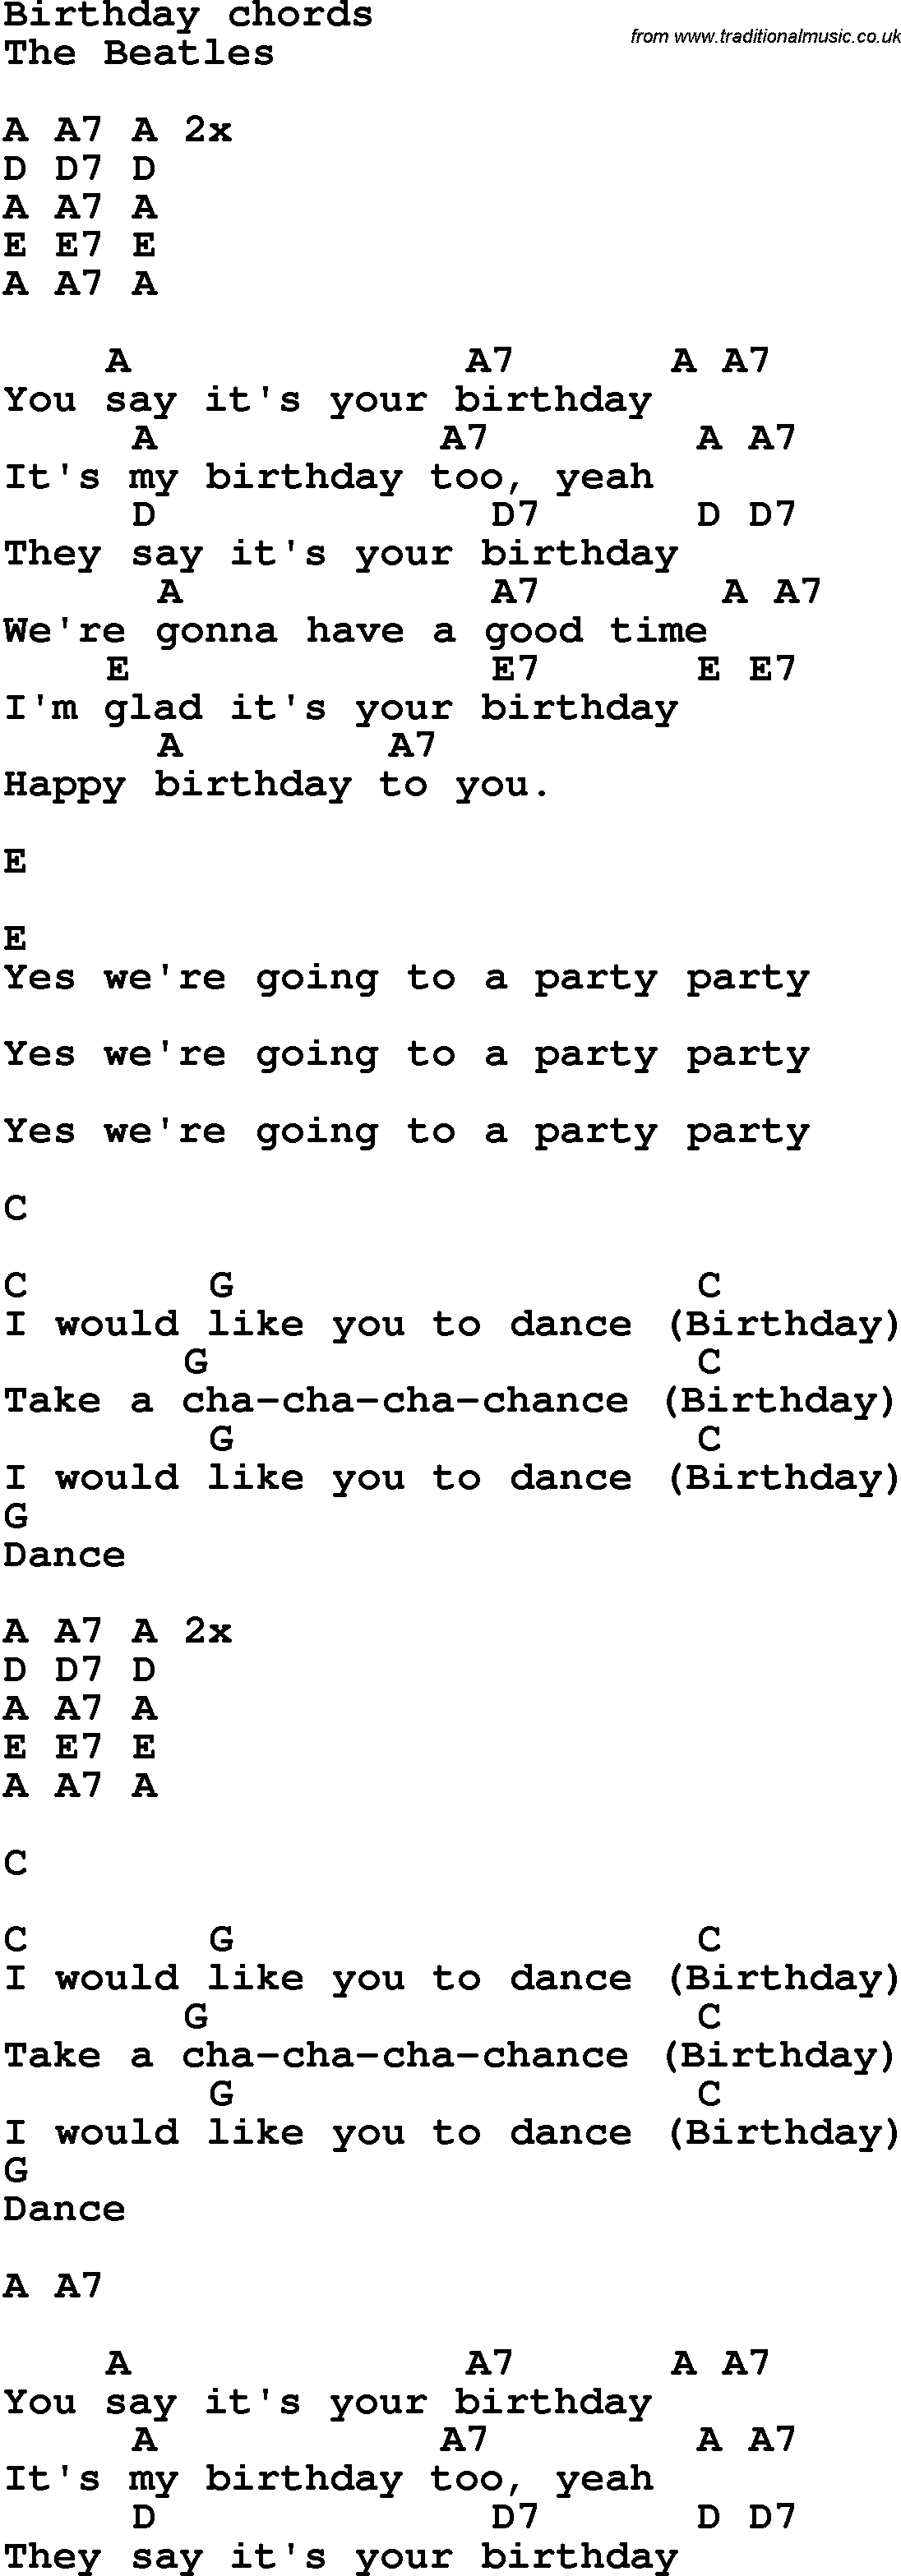 Song lyrics with guitar chords for birthday the beatles song lyrics with guitar chords for birthday the beatles hexwebz Images